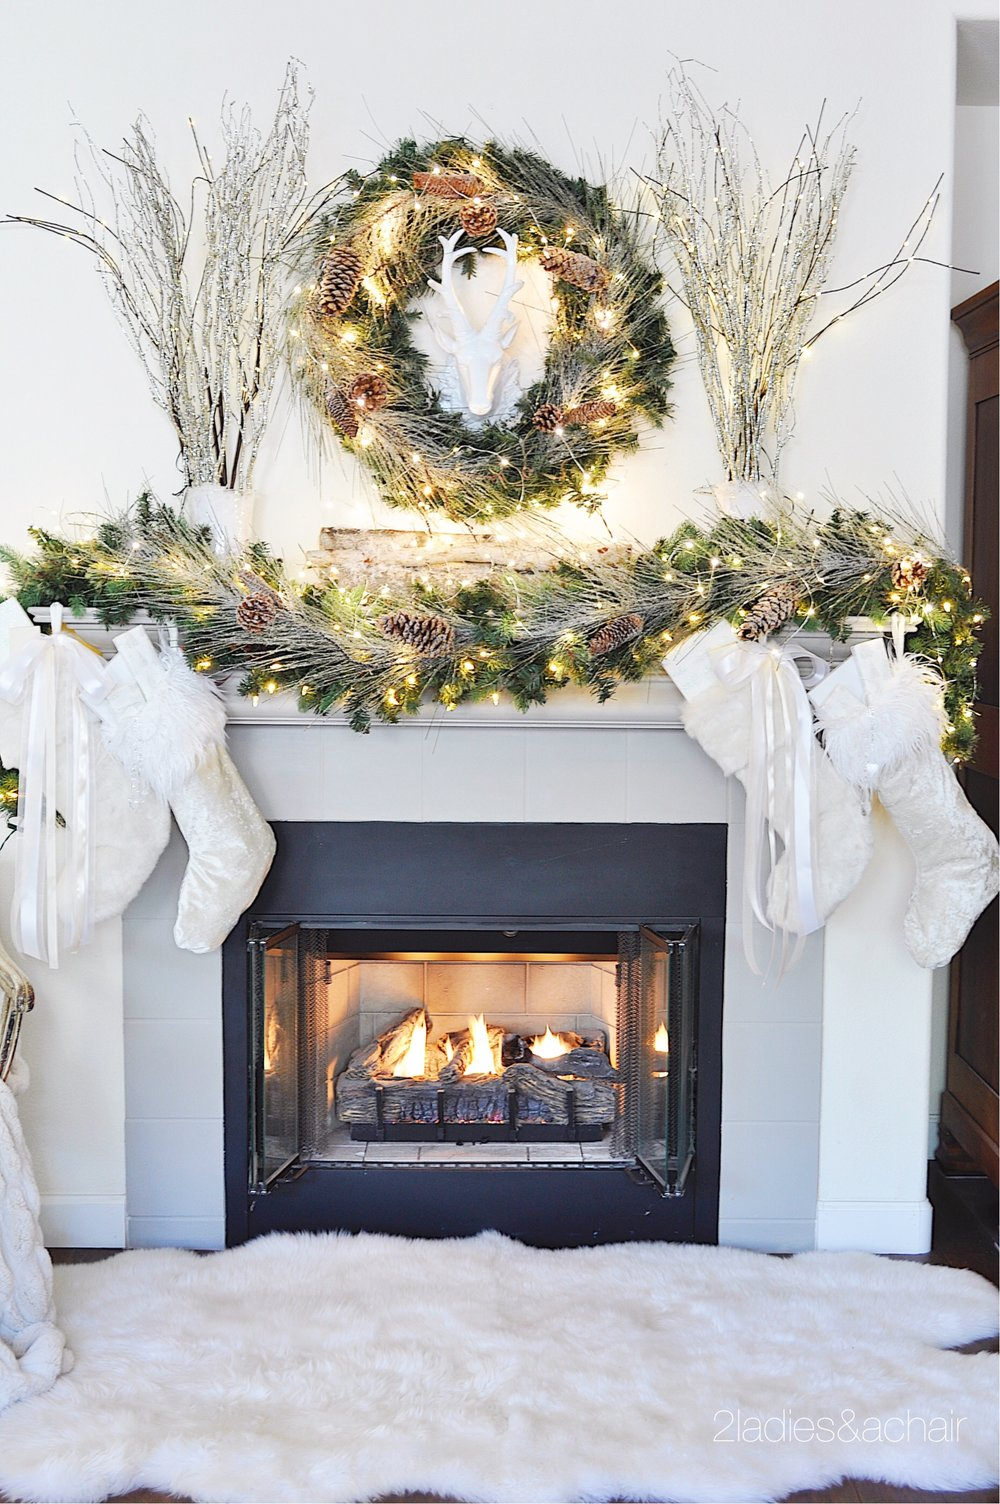 Christmas Home Decorating Ideas For A Beautiful Holiday ...